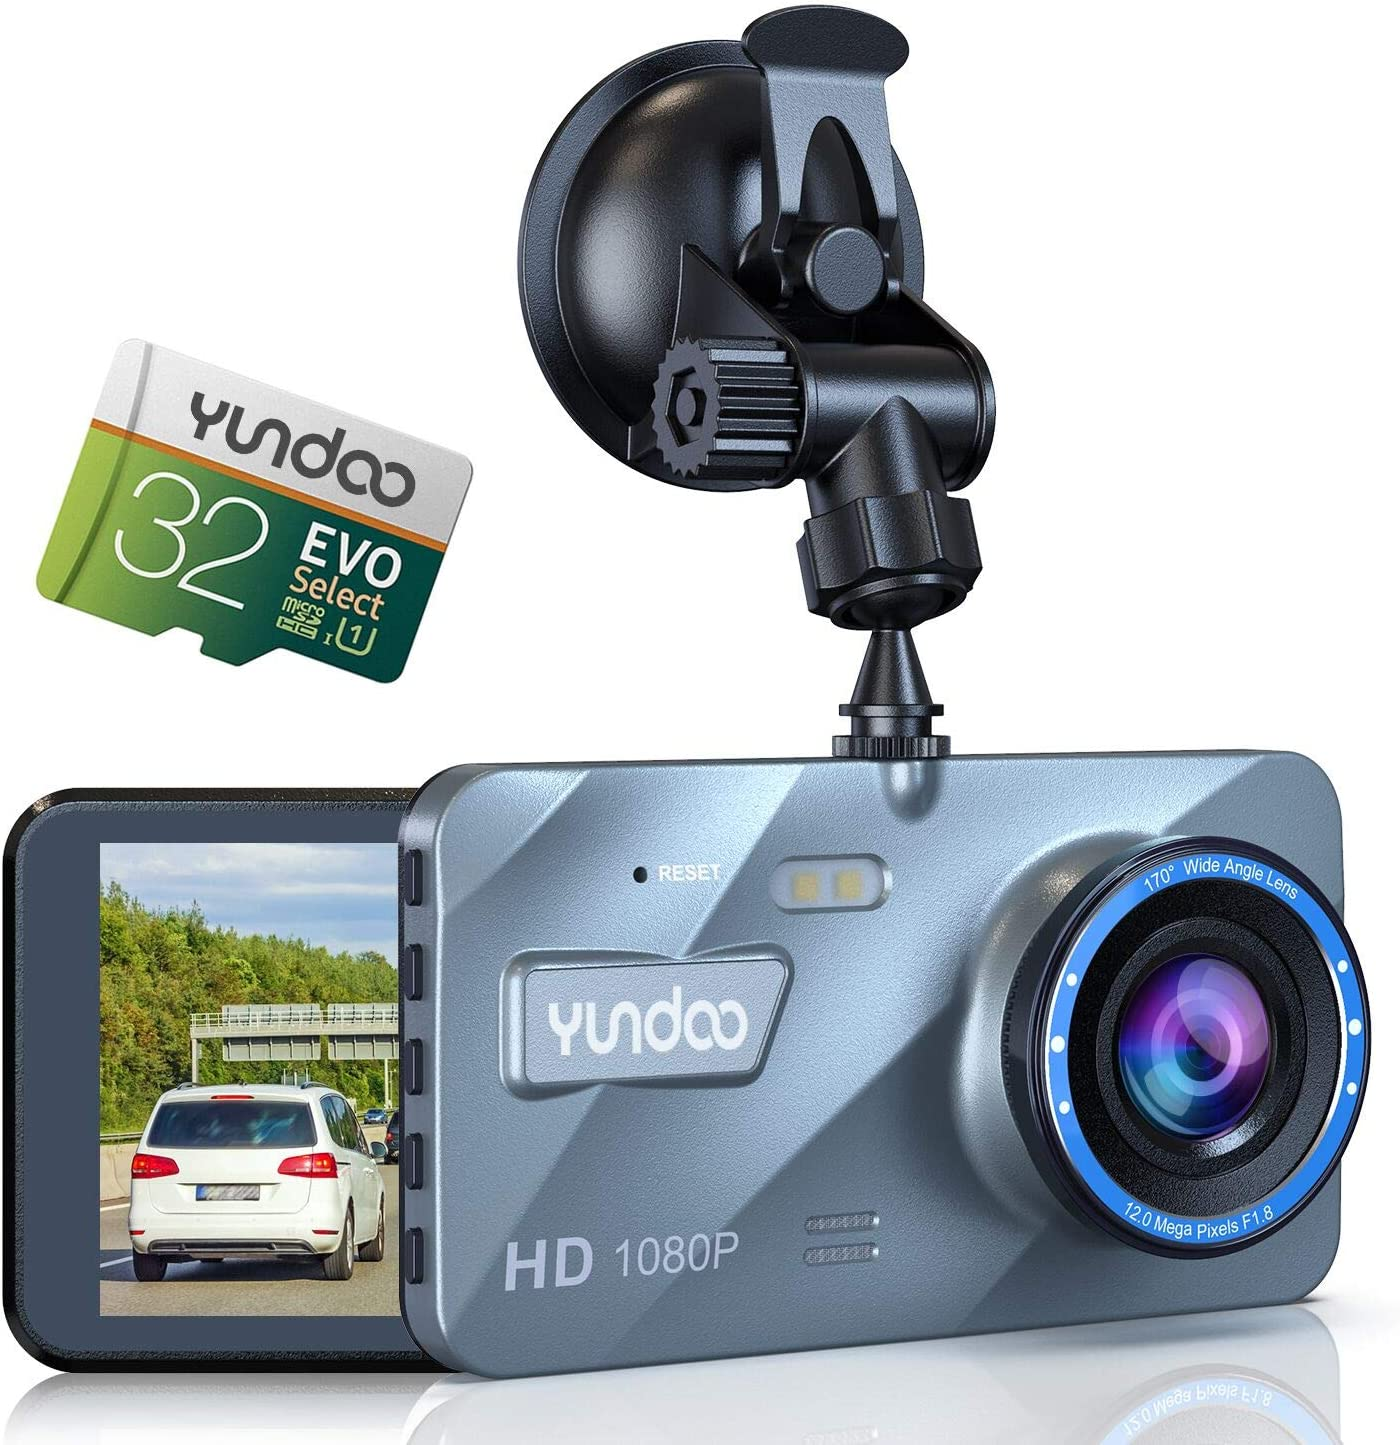 Dash Camera for Cars - Full HD 1080P Dash Camera for Cars,4 Inch IPS Screen Wide-Angle Lens Car Camera,G-Sensor ,WDR Technology,Loop Recording,Parking Monitoring.(2020 Version)